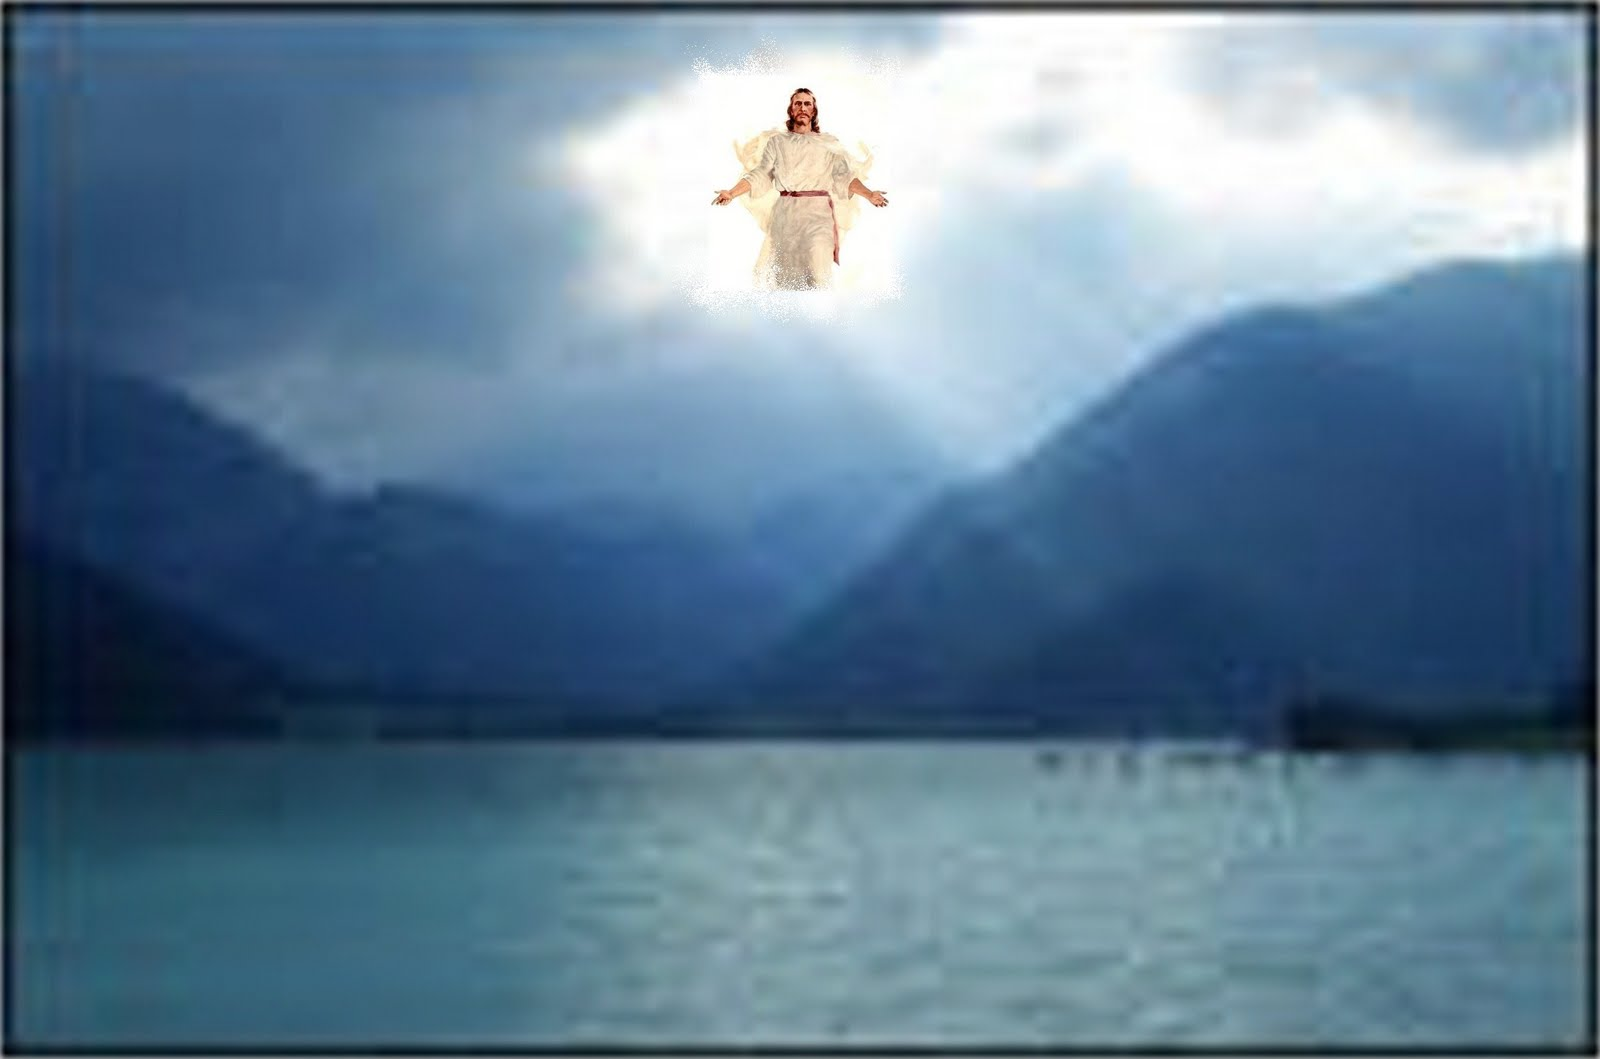 Jesus christ second coming pictures images and wallpapers